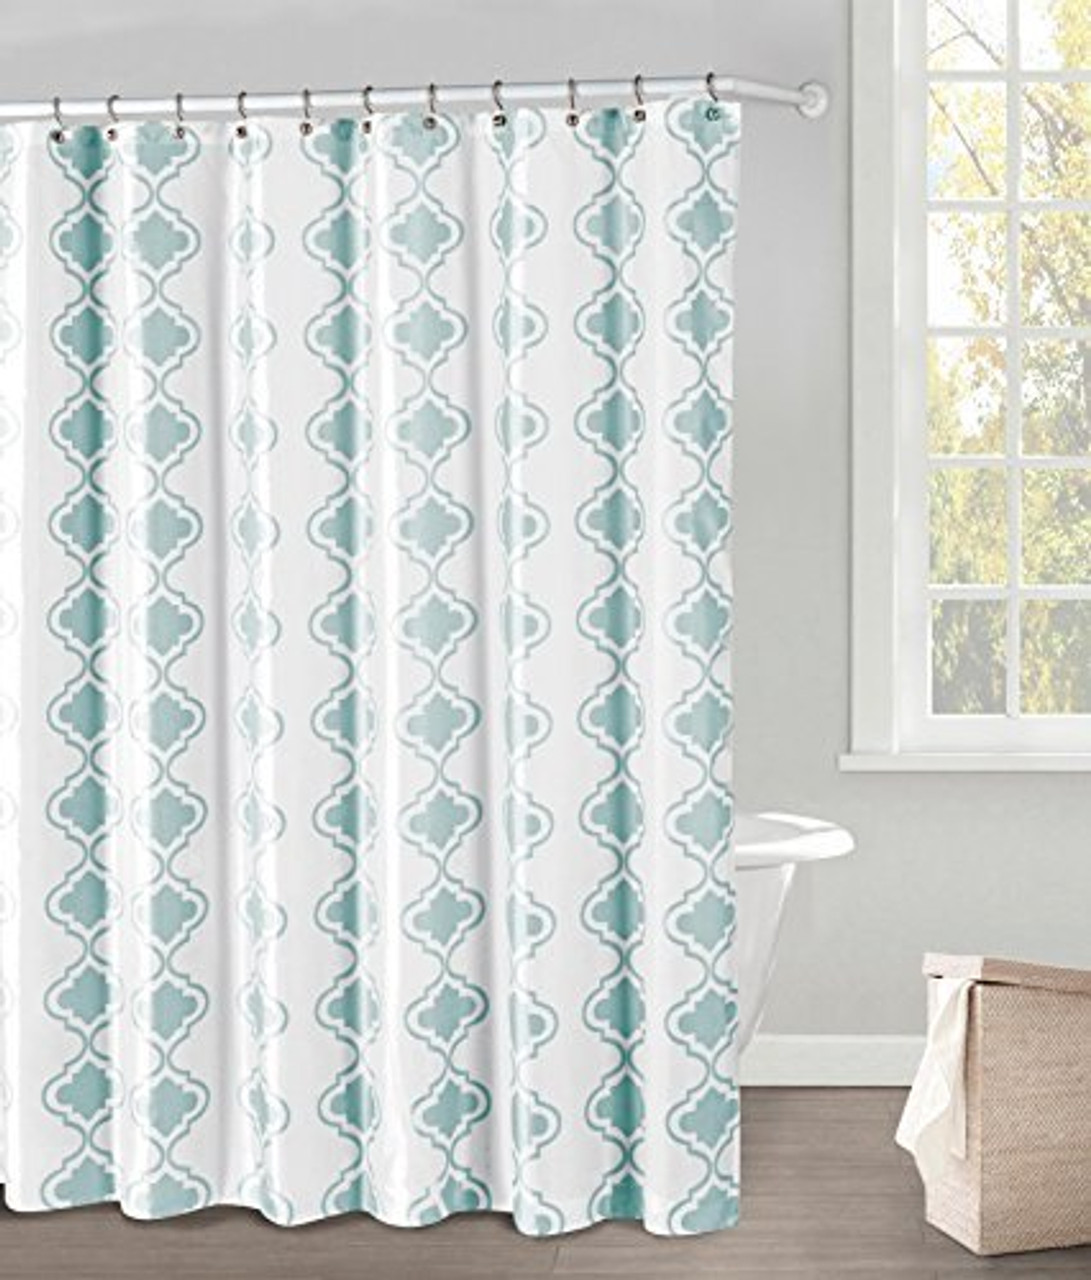 white and blue fabric shower curtain blue moroccan tile design 70 x 72